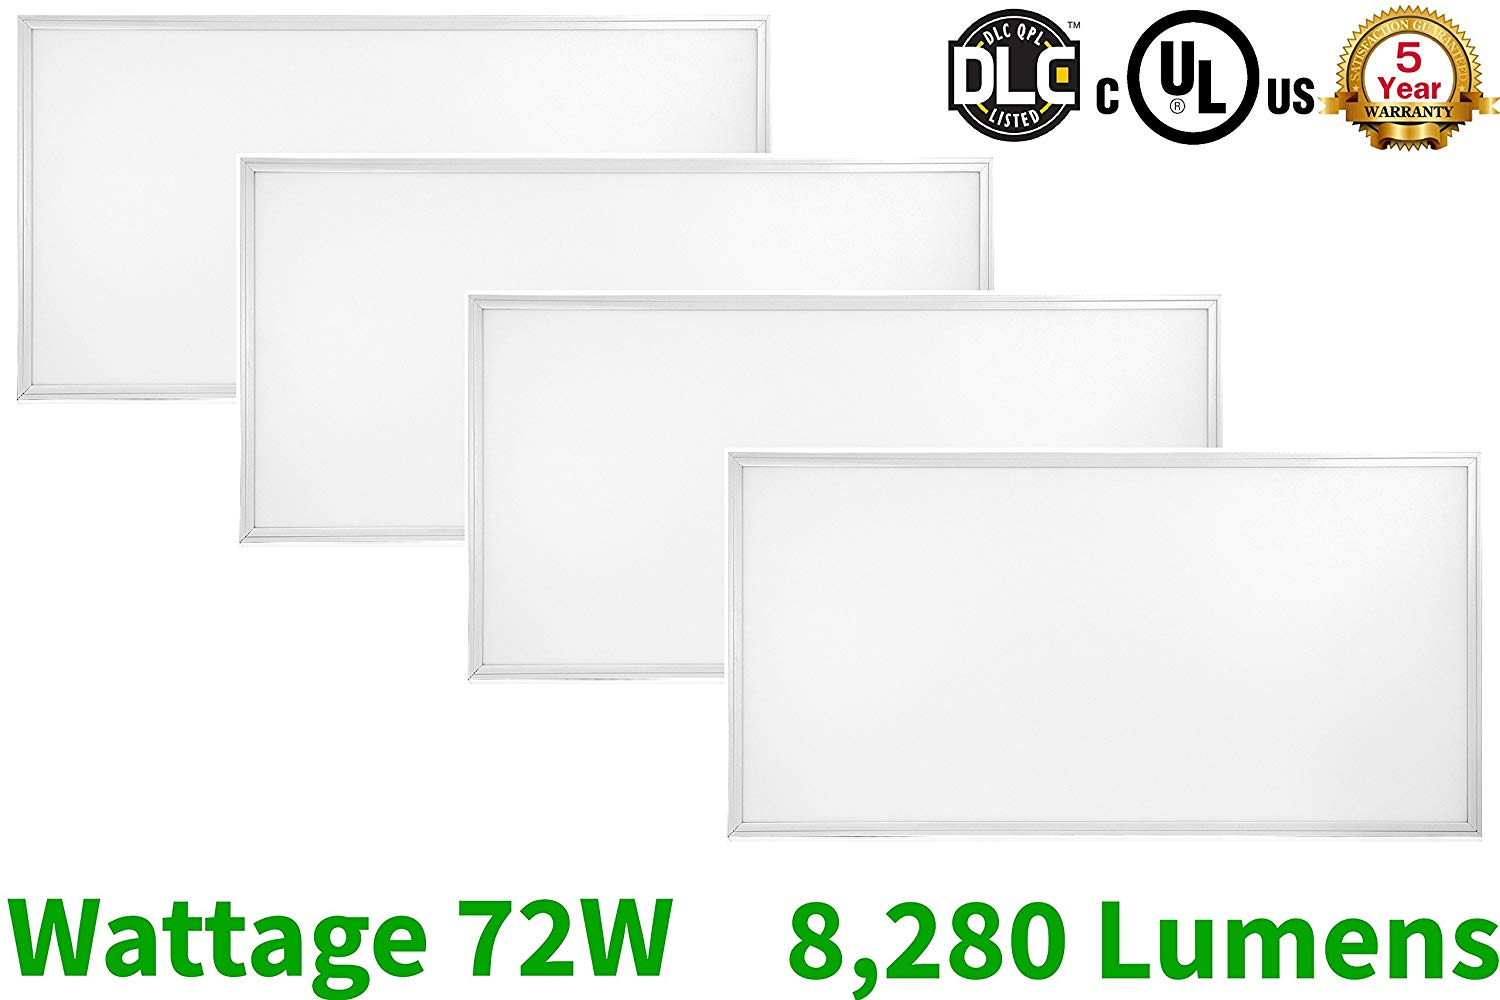 "2x4 Panel Troffer Edge-Lit Flat 5000K (4 PACK) 24"" x 48""; 72W; 8280 Lumens; 120V-277V AC/DC; 0-10V Dimmable; 50,000 Life Hours; CRI>83; 5 YR Warranty; UL/DLC Listed"